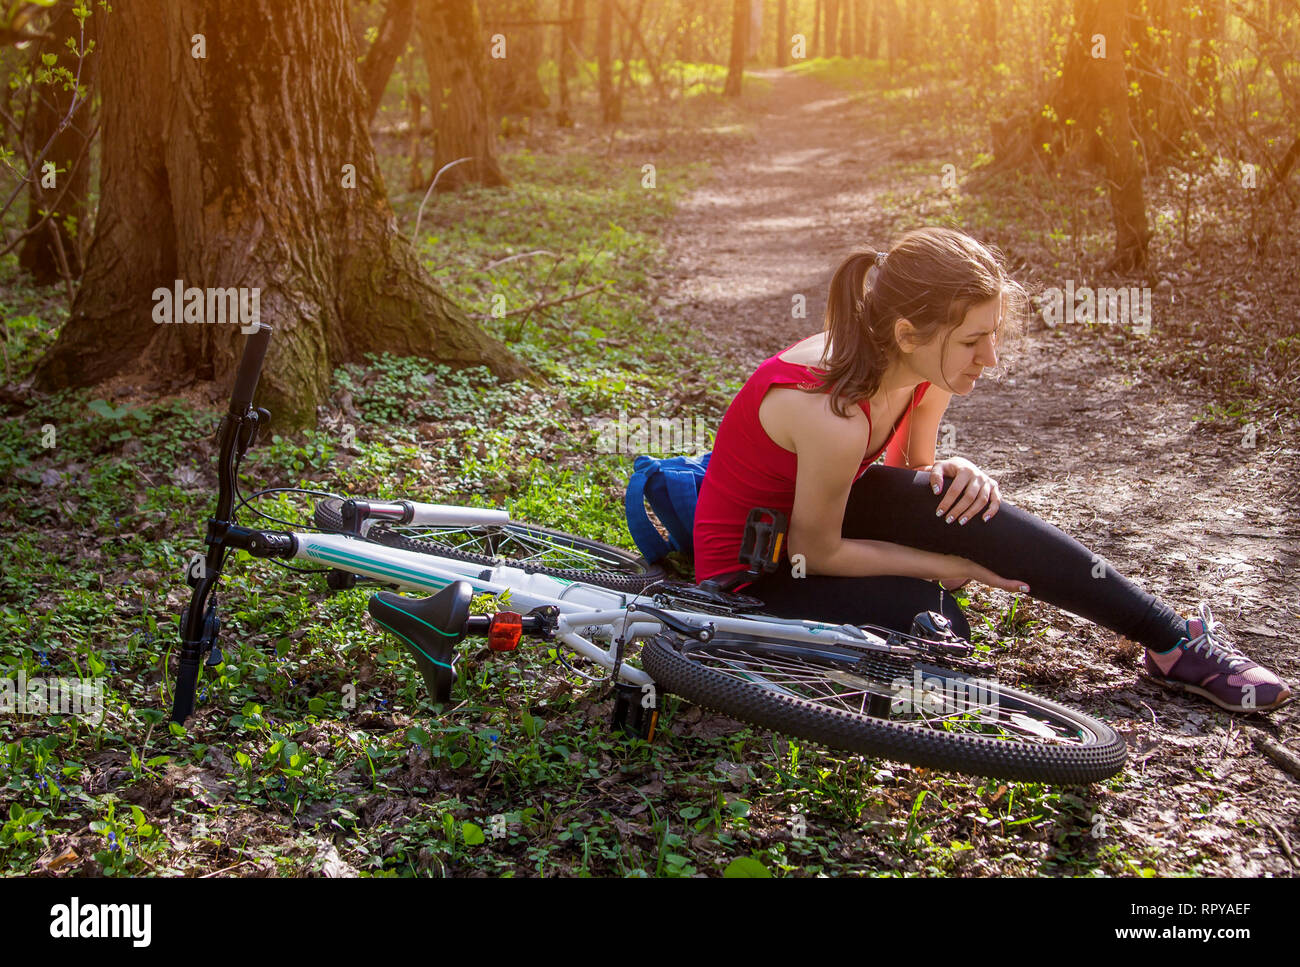 Young woman fell off the bicycle and hurt knee in forest. Injuries and traumas during sport - Stock Image